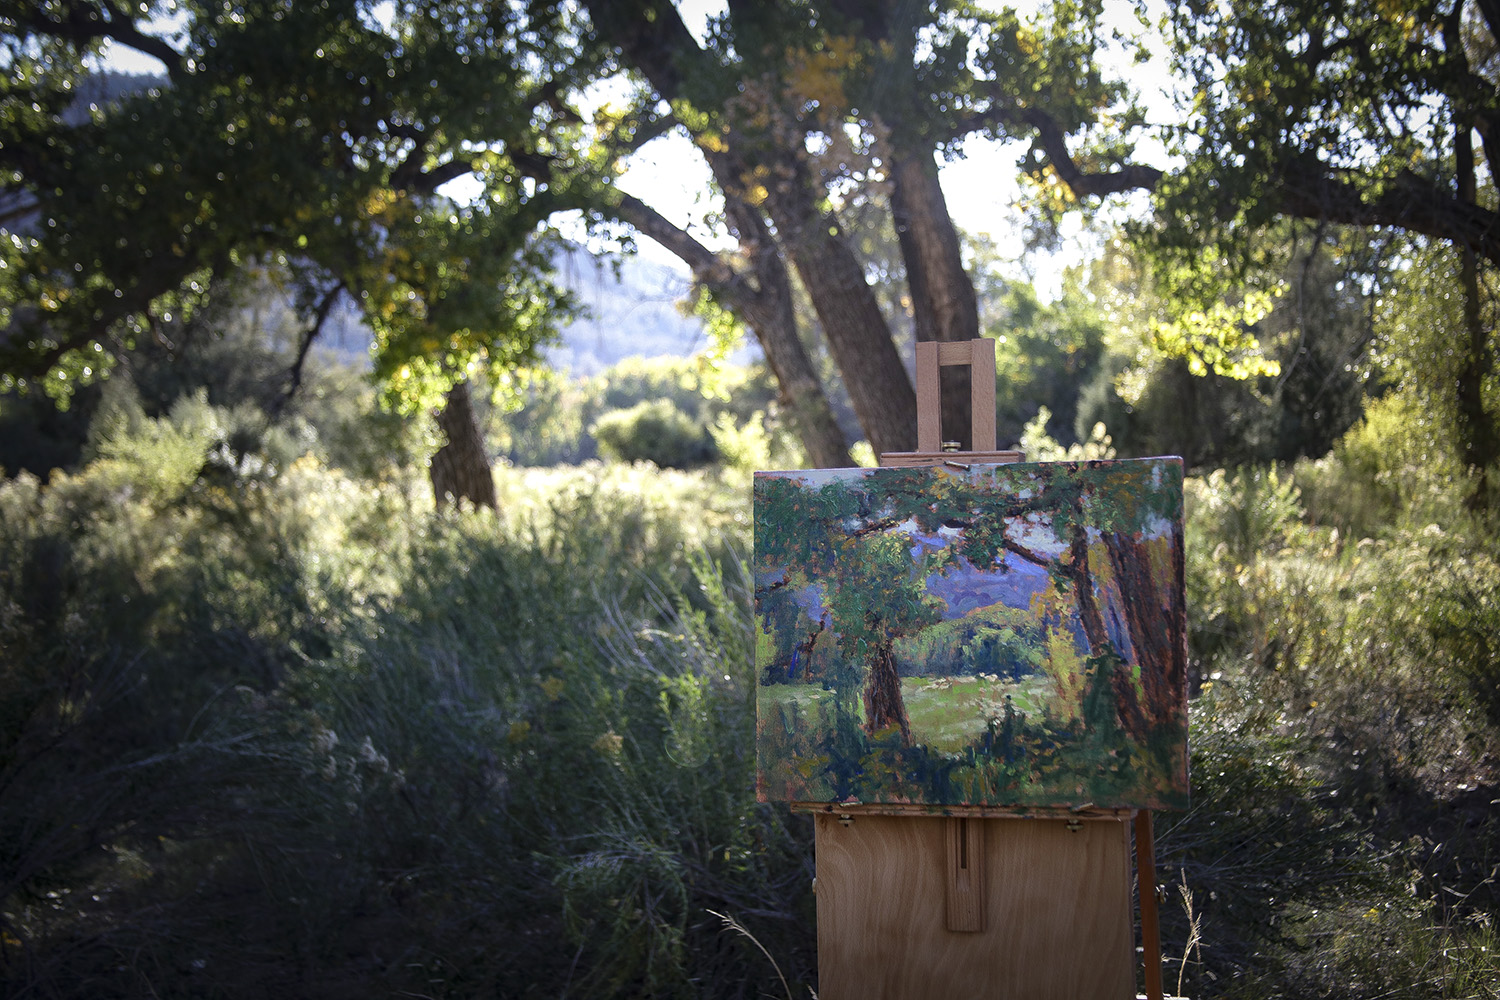 plein air painting in progress near Abiquiu, NM